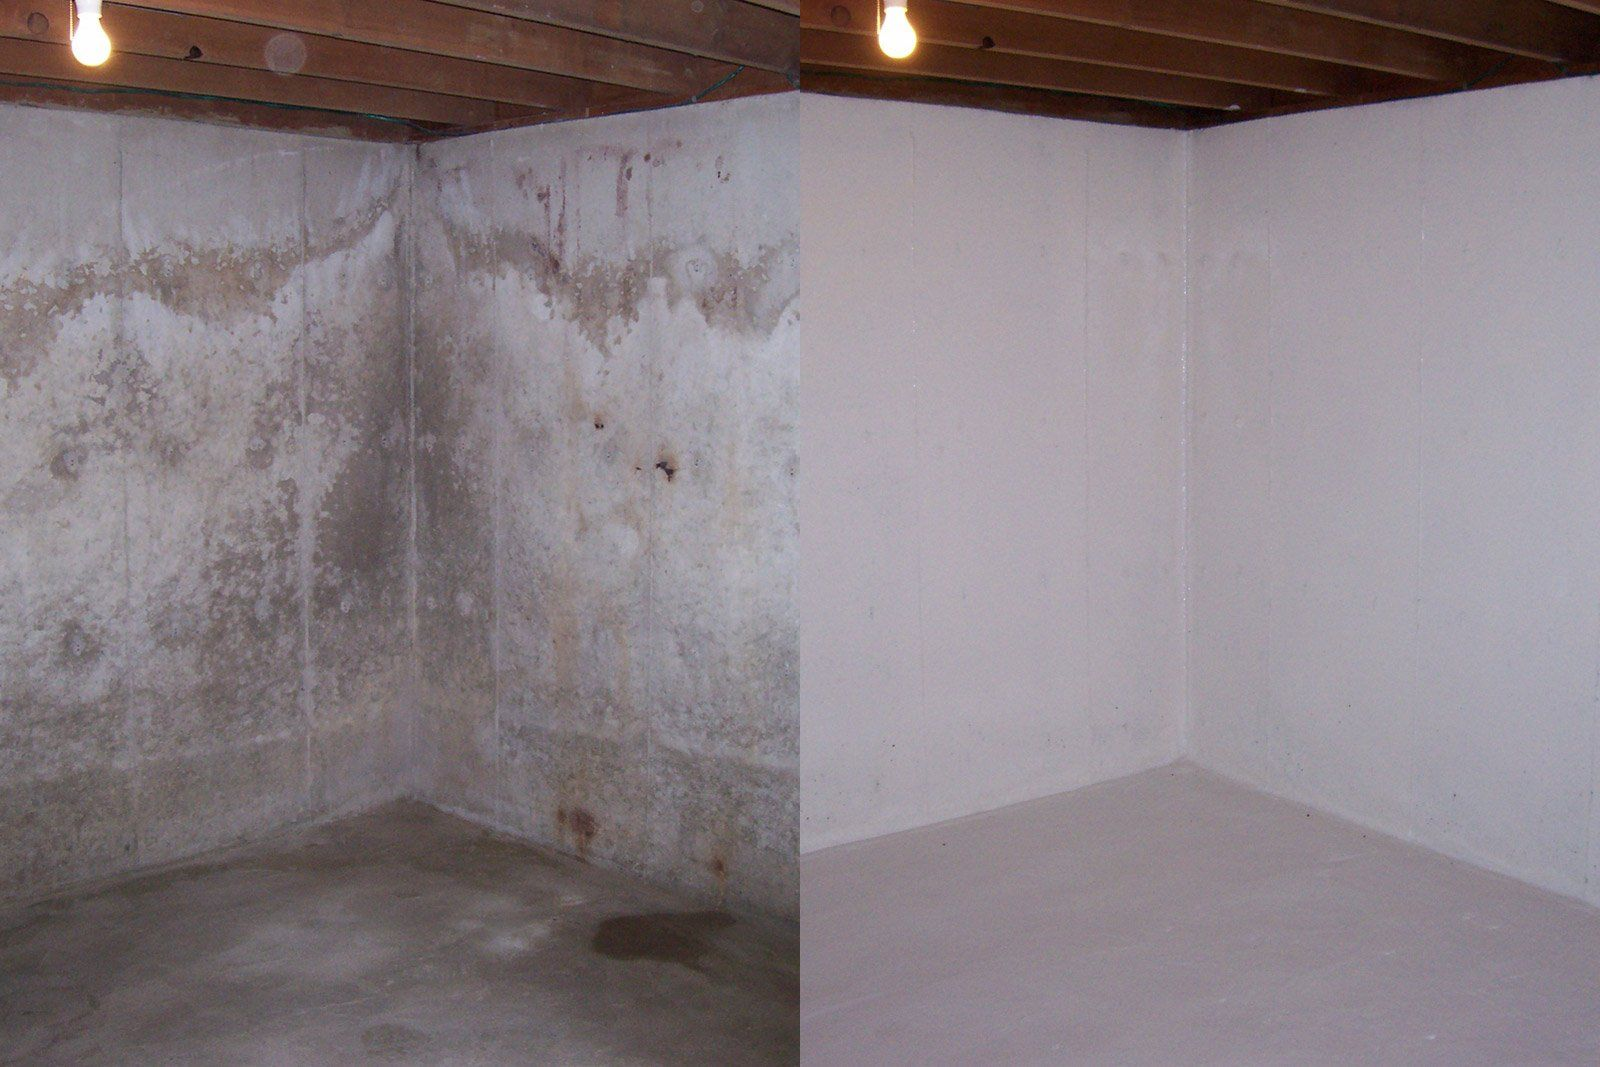 Reasons To Use The Water Sealant Paint For Basement Basement Waterproofing Wapakoneta, OH | SANI-TRED